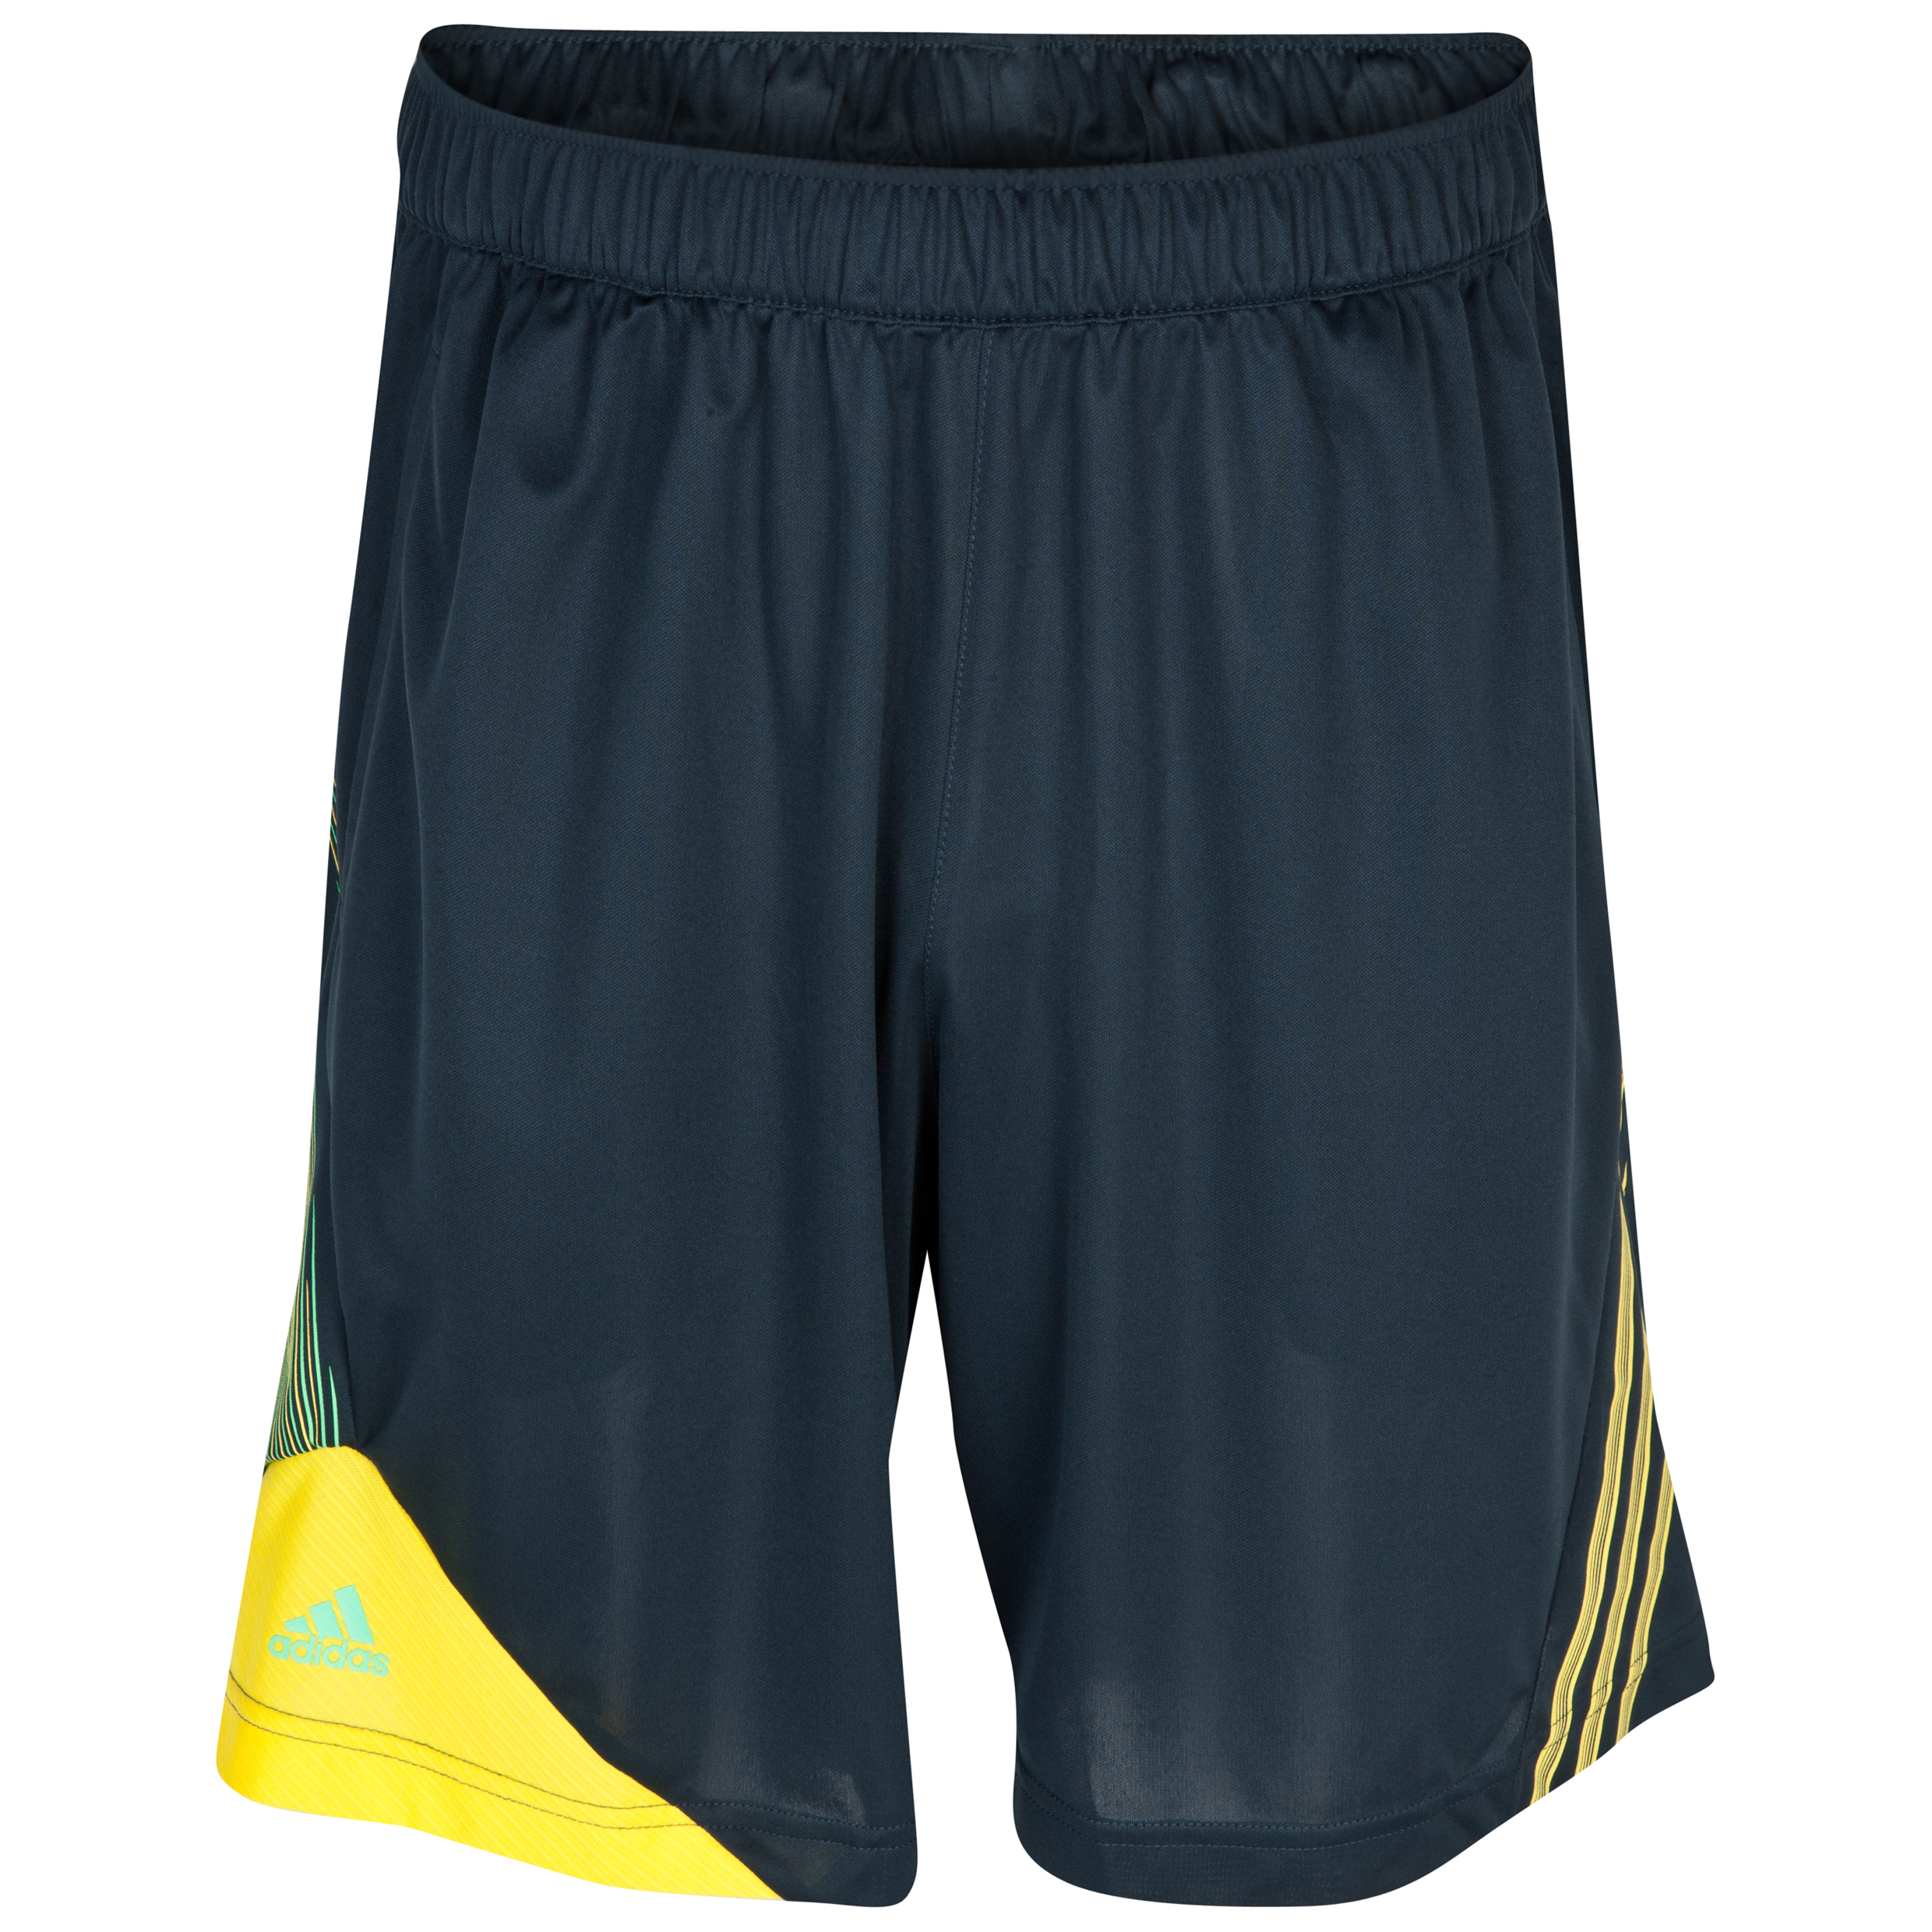 Adidas F50 Training Short - Tech Onix /Vivid Yellow /Green Zest